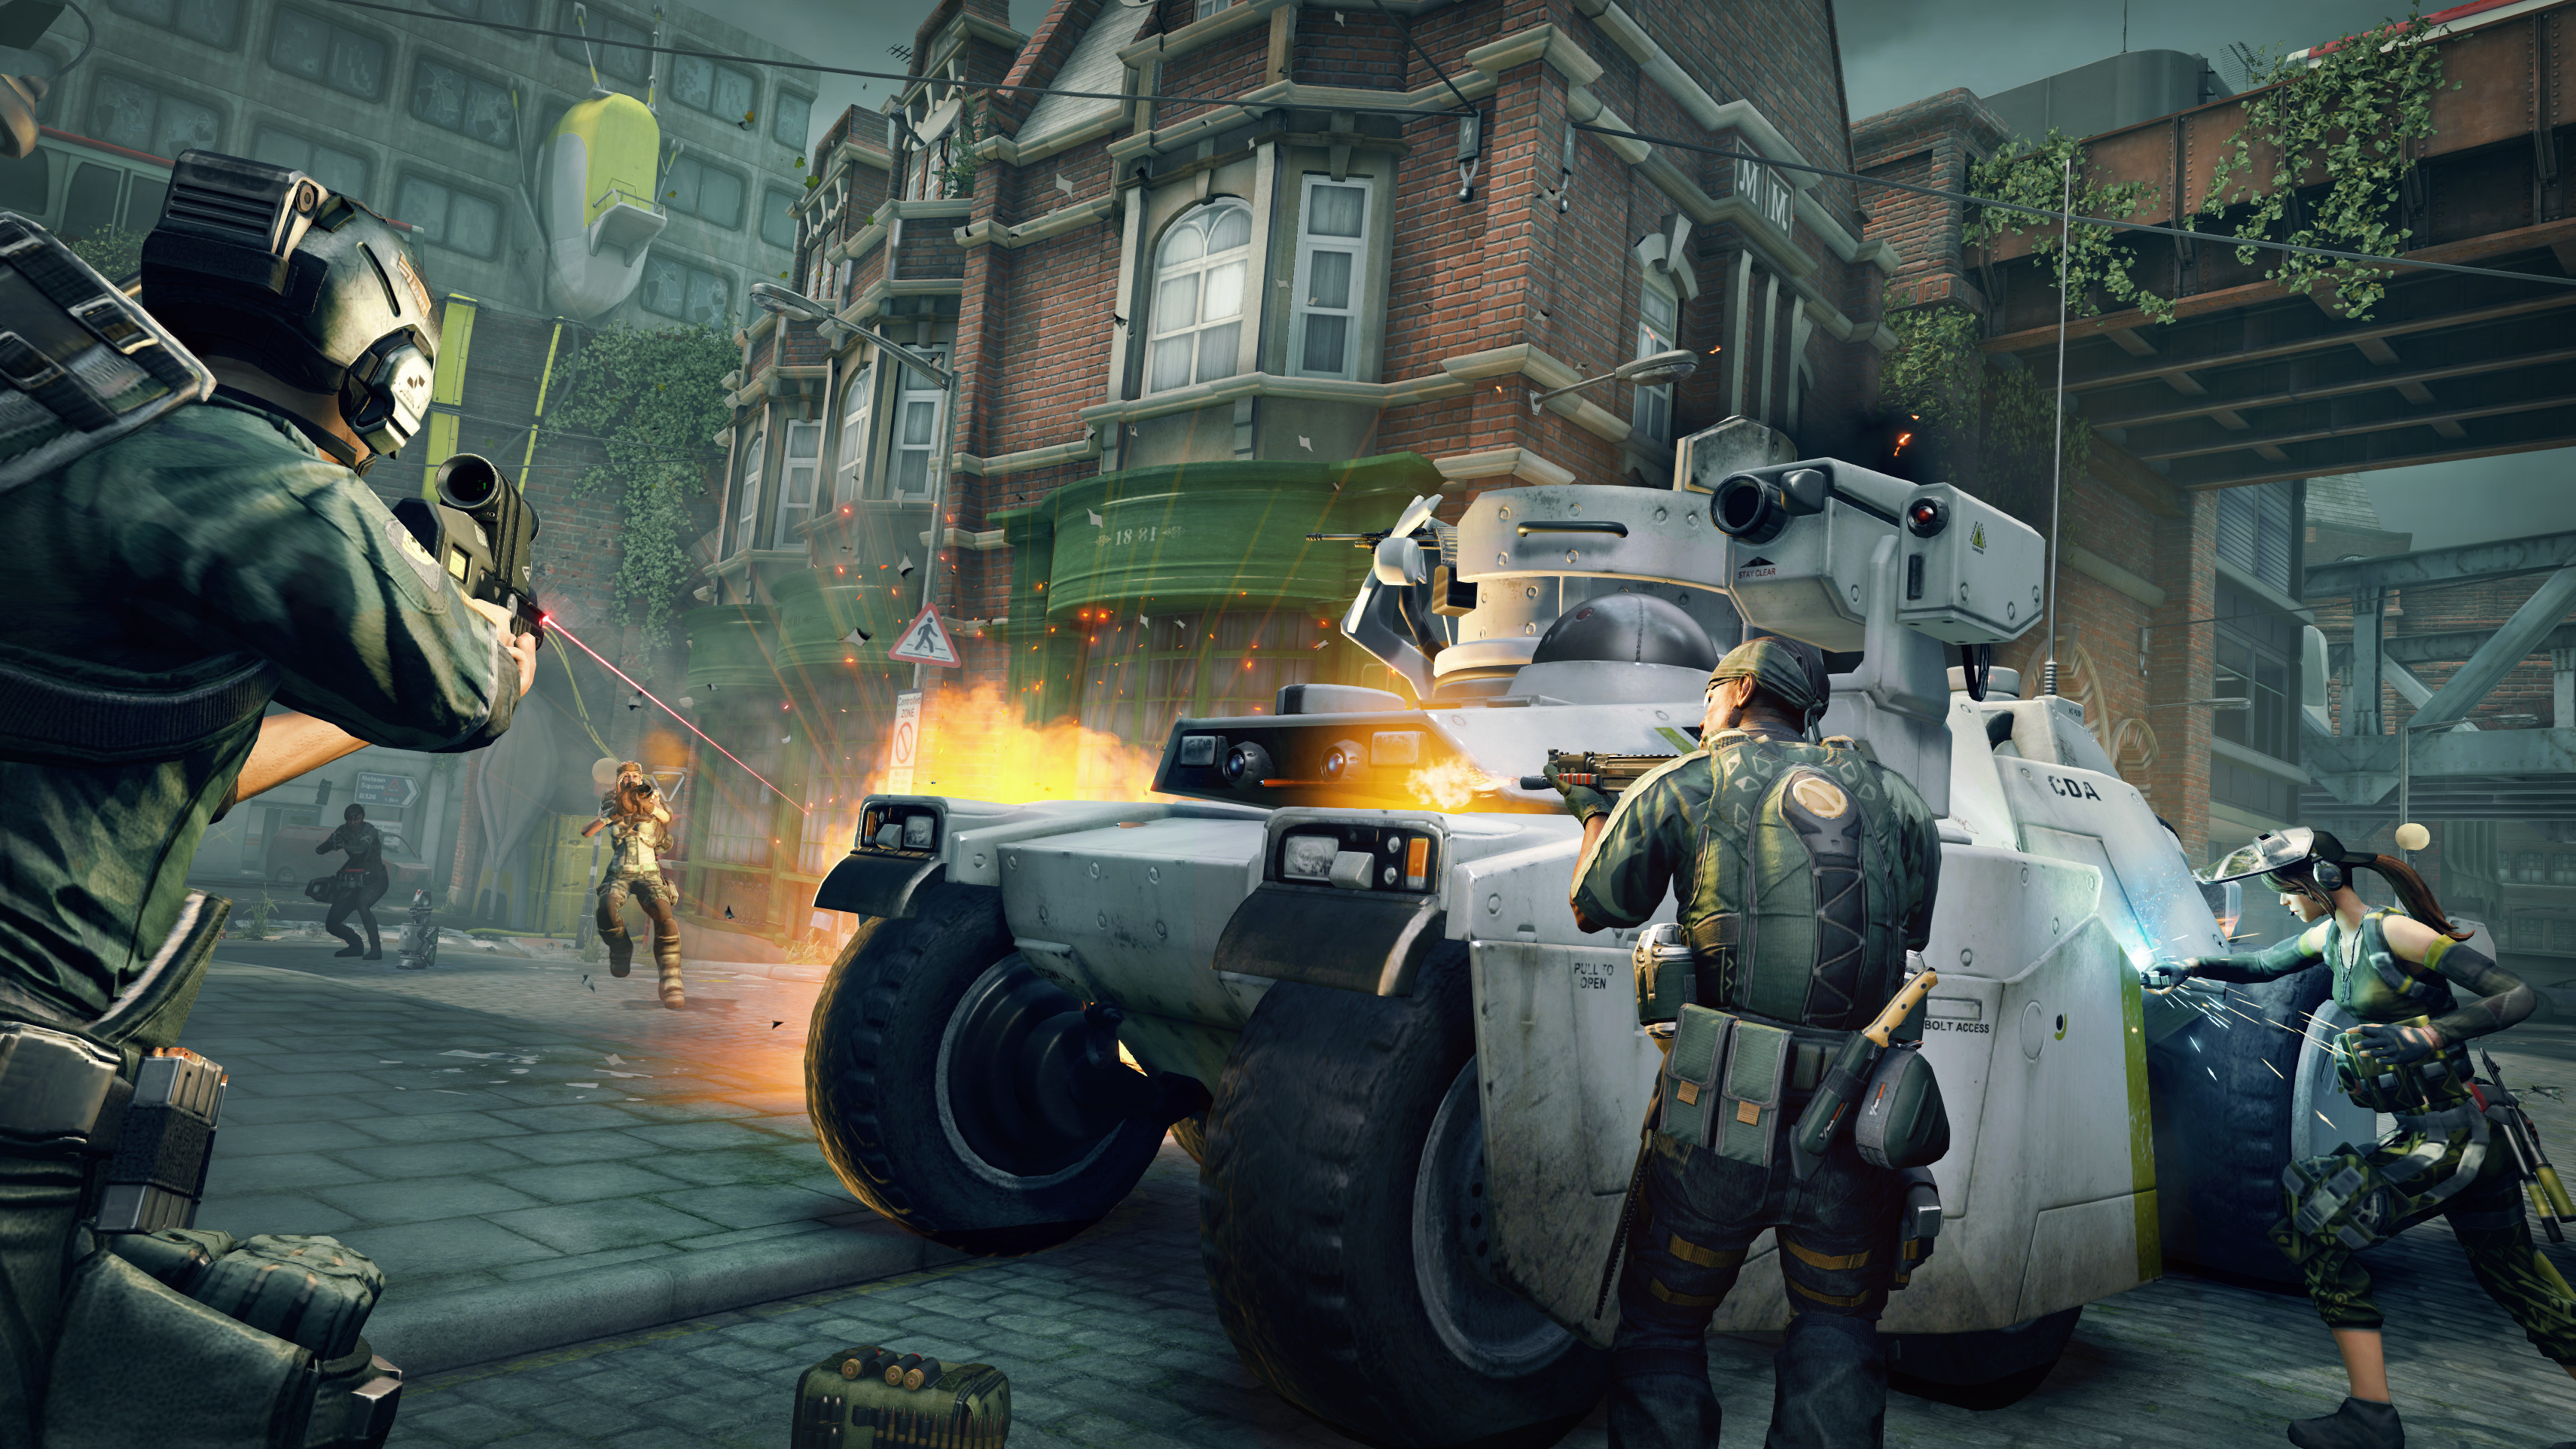 Free-to-play FPS Dirty Bomb officially launches after years in open beta